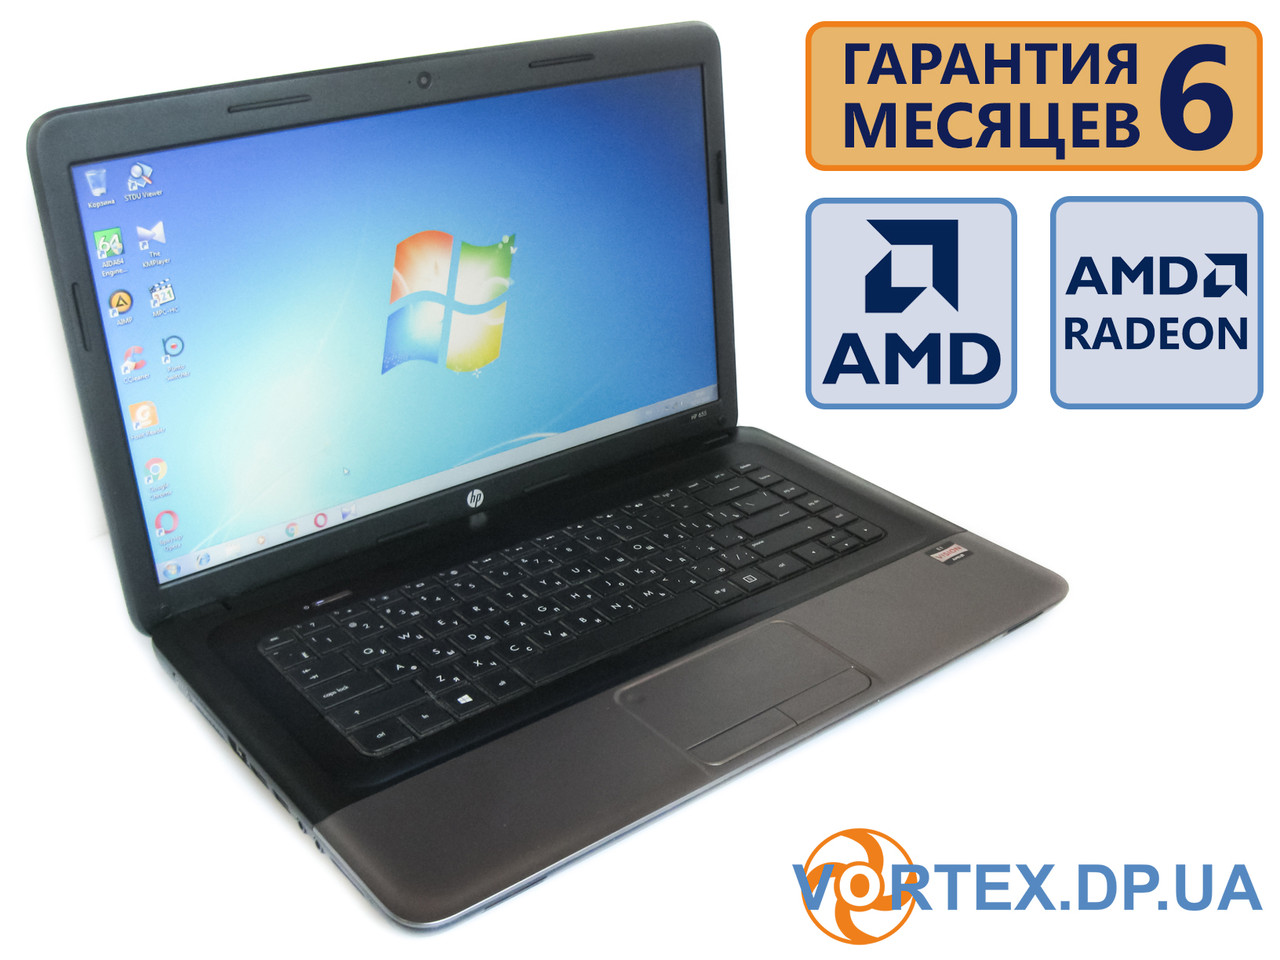 Ноутбук HP 655 15.6 (1366x768) / AMD E1-1200 (2x1,4Ghz) / RAM 3Gb / HD